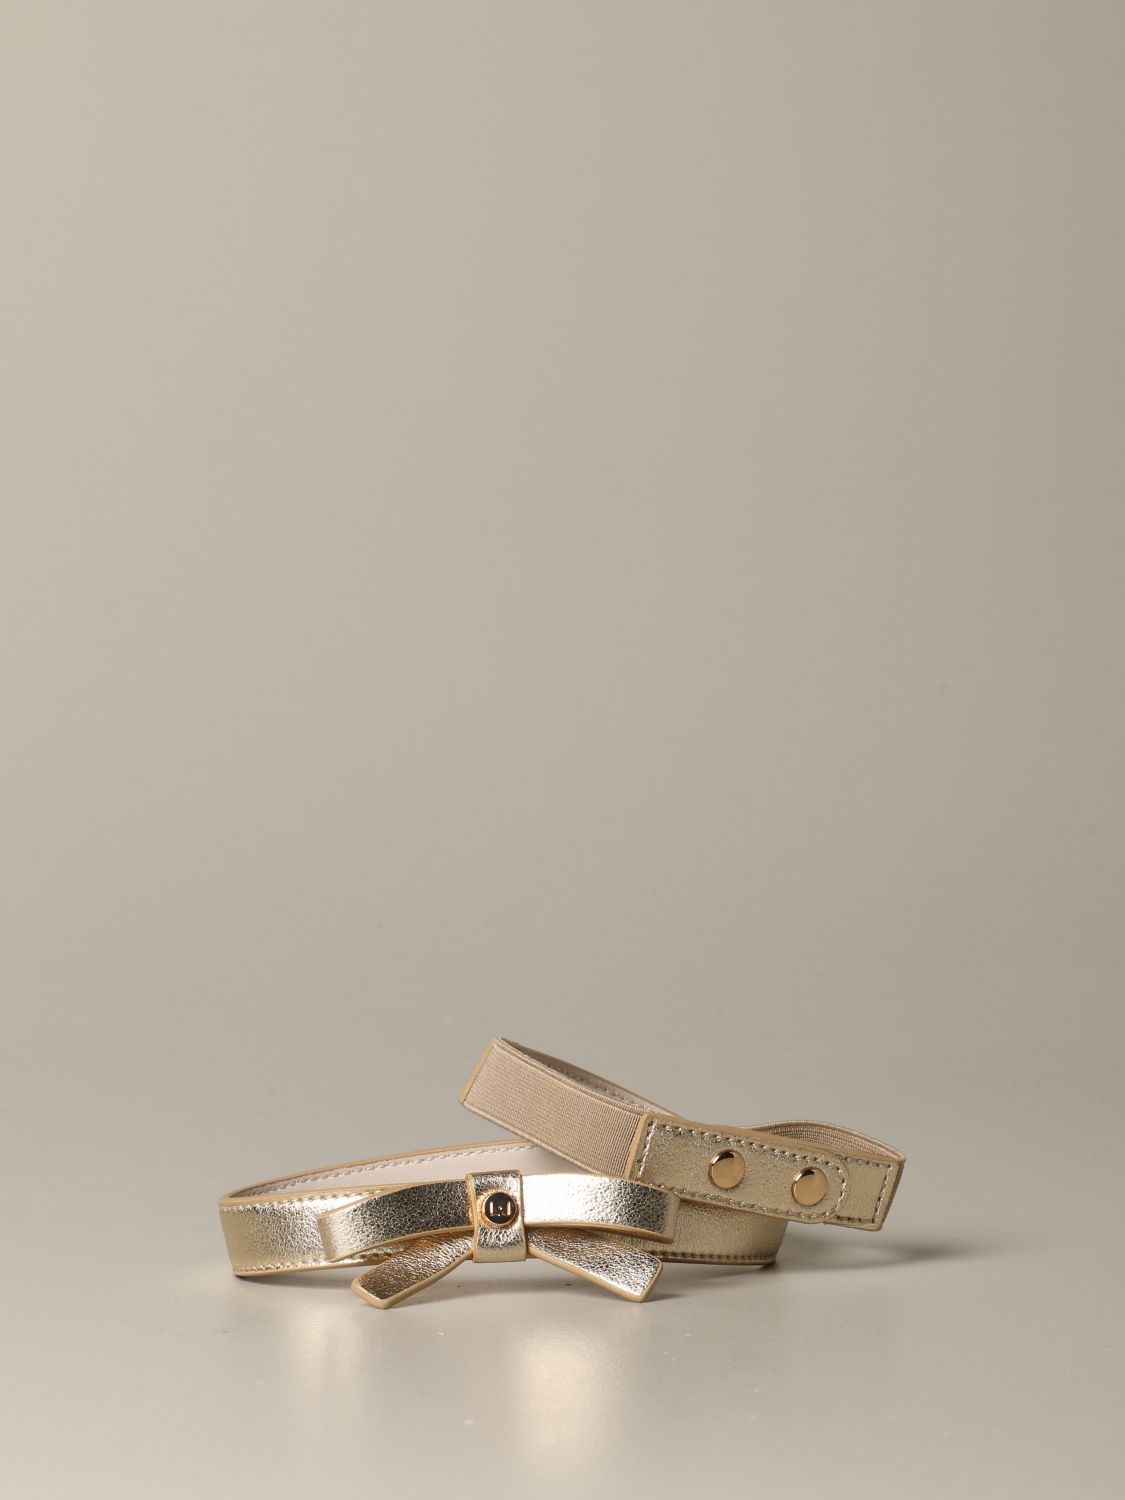 Liu Jo belt in laminated leather with bow gold 1